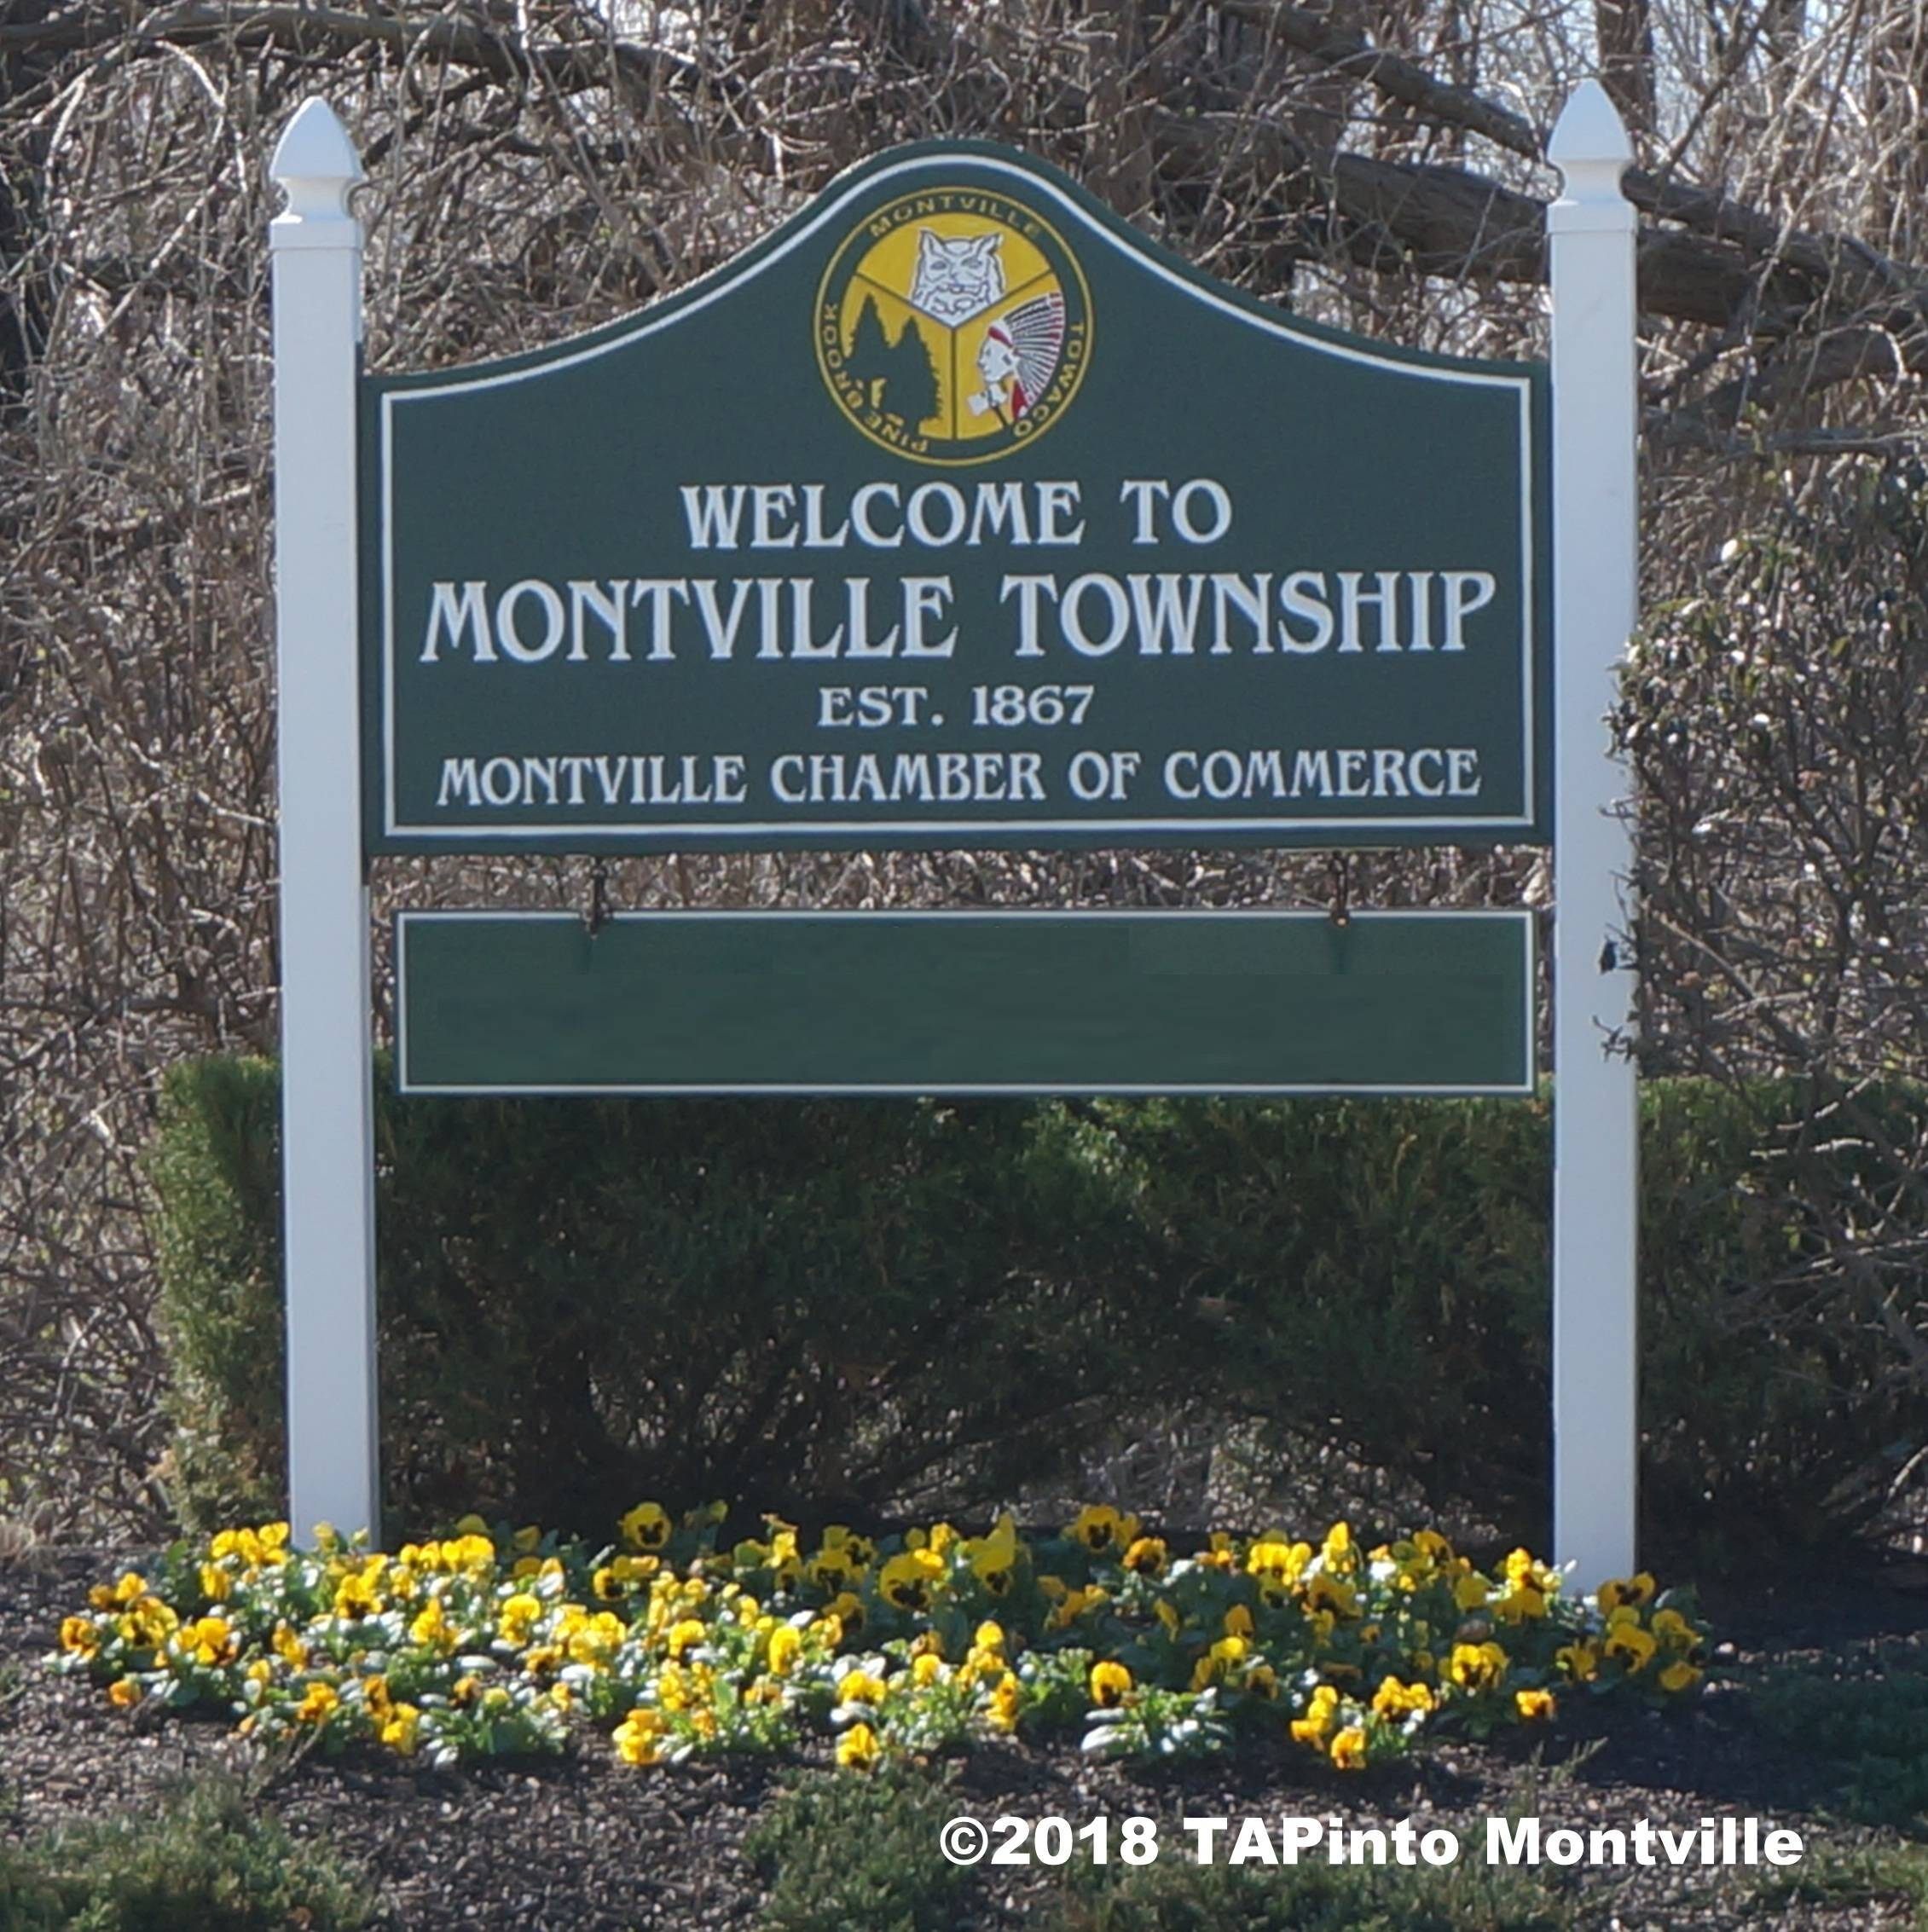 e5446f4169c616794416_A_Welcome_to_Montville_spring_sign_7_BLANKED_OUT___watermark_2018.JPG